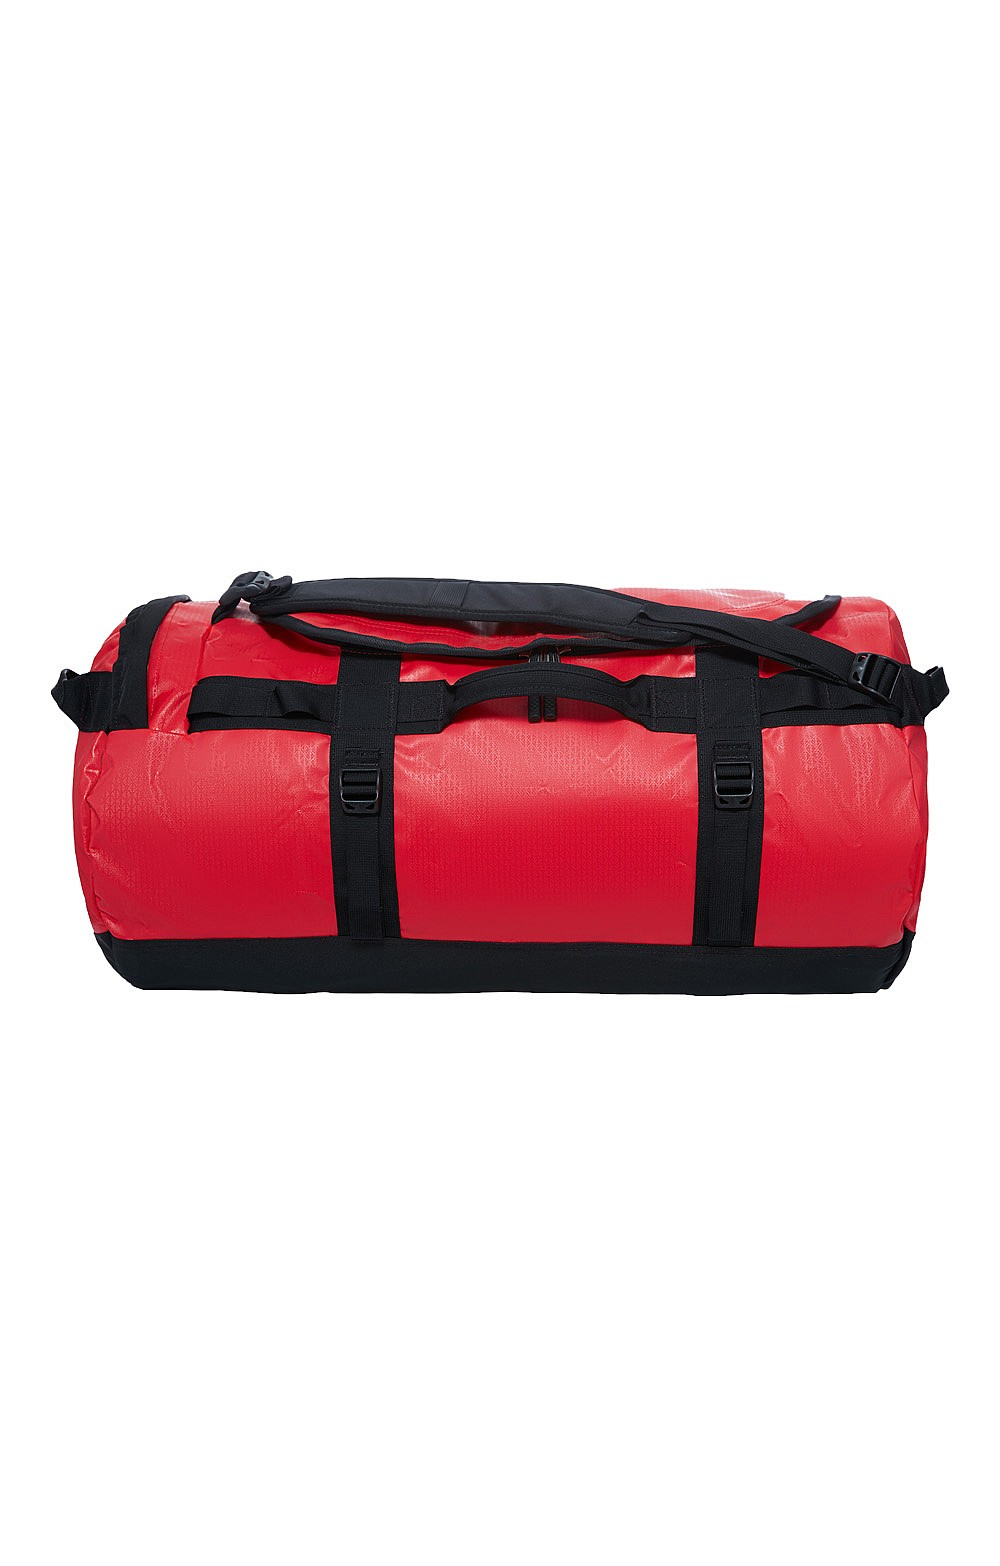 537b9a97340 The North Face Small Base Camp Duffle